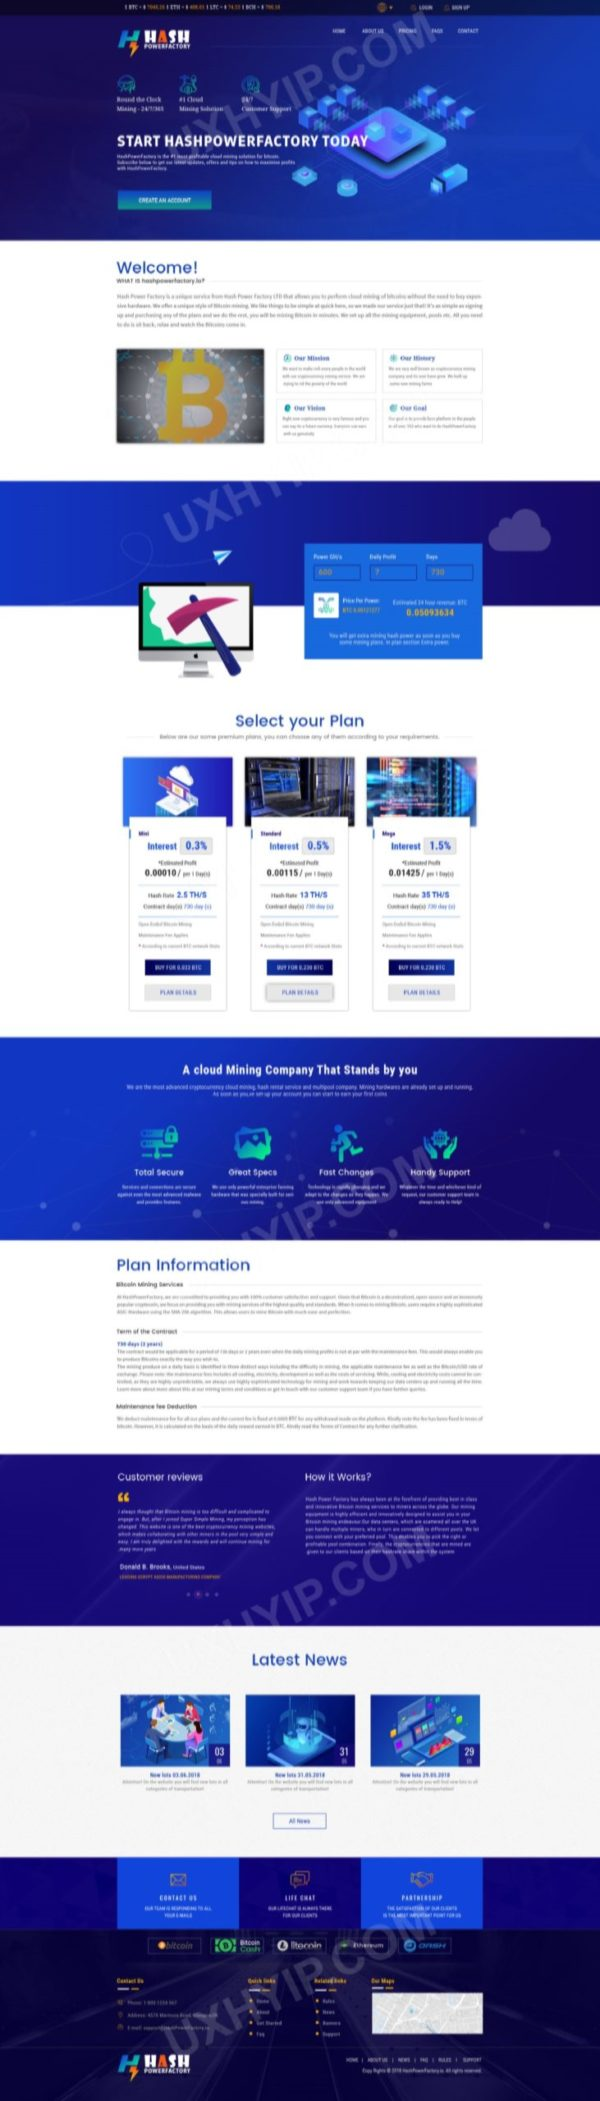 HYIP Template - Investment Business Template HashPowerFactory ID 134